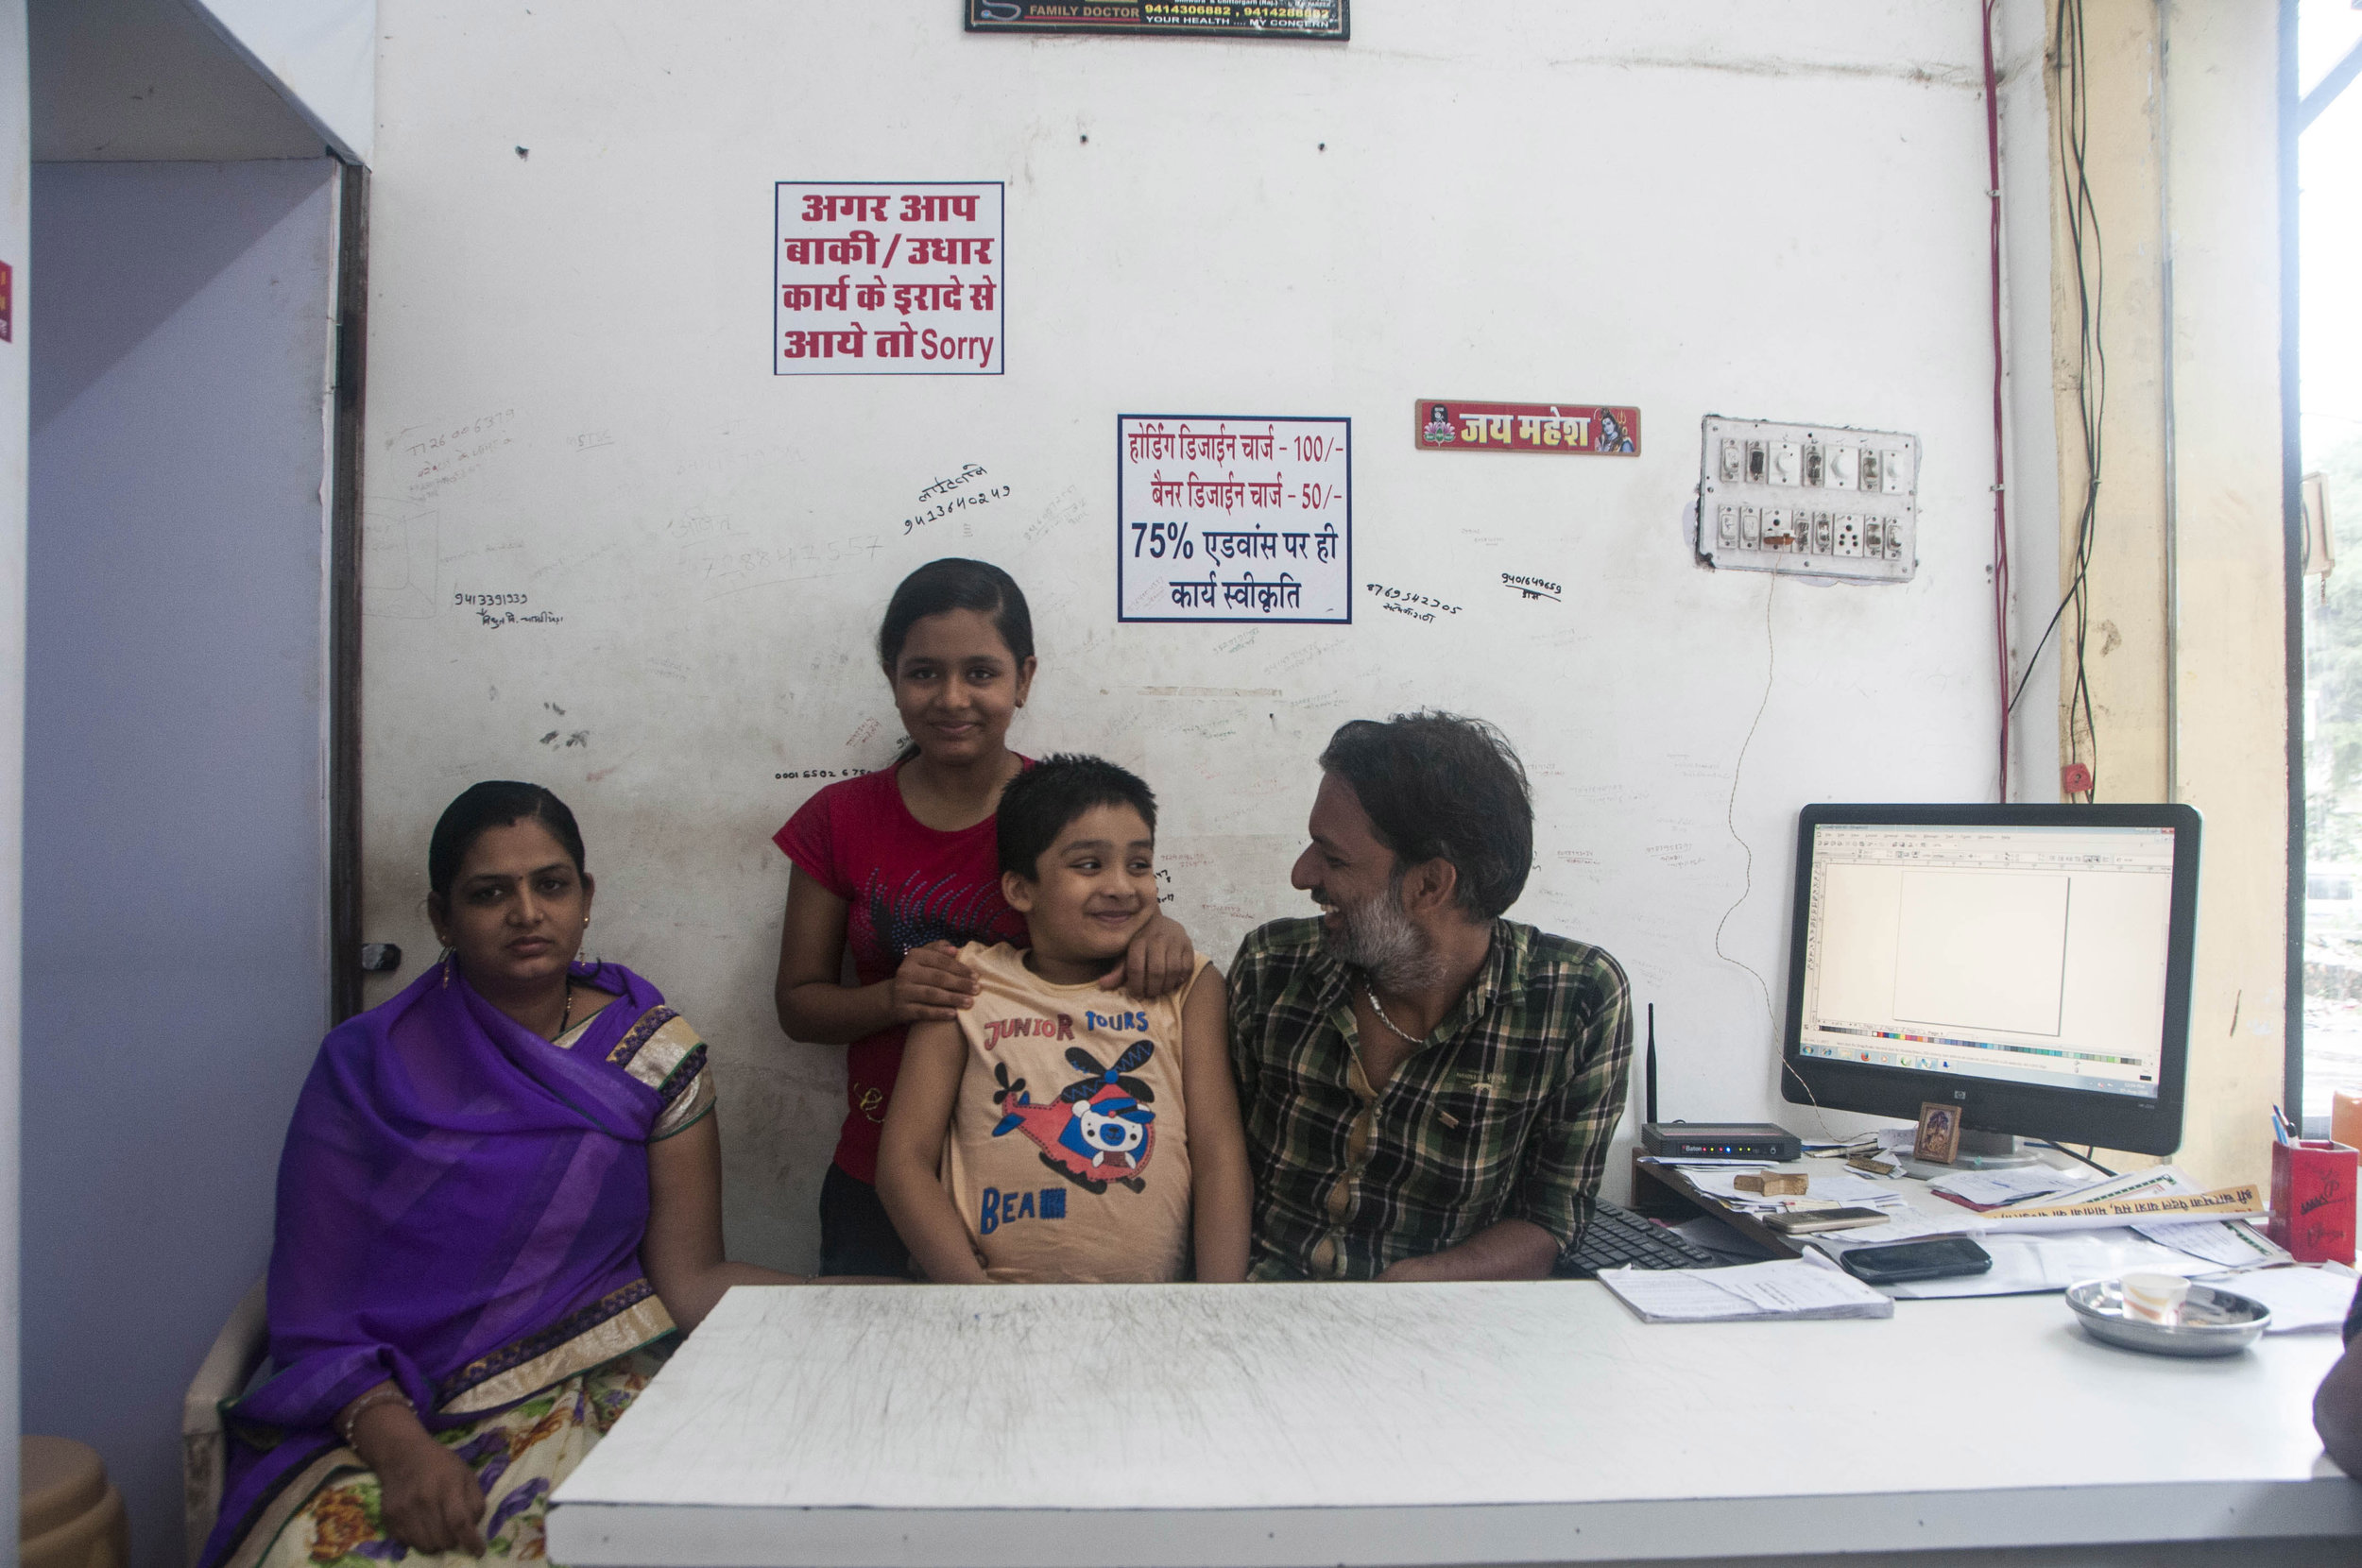 Daksh's parents, Dimpy and Rajan, spearheaded the movement to introduce factor VIII, an injection for hemophilia, under Rajasthan's Free Medicine Scheme. They recount the times when a single vial cost seven thousand rupees and express relief over the Scheme's expanded coverage.